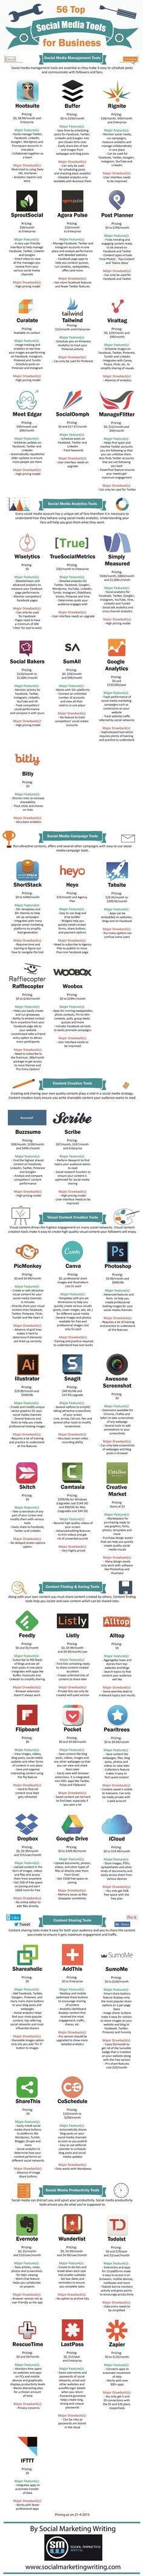 56 Top Social Media Tools for Business Infographic